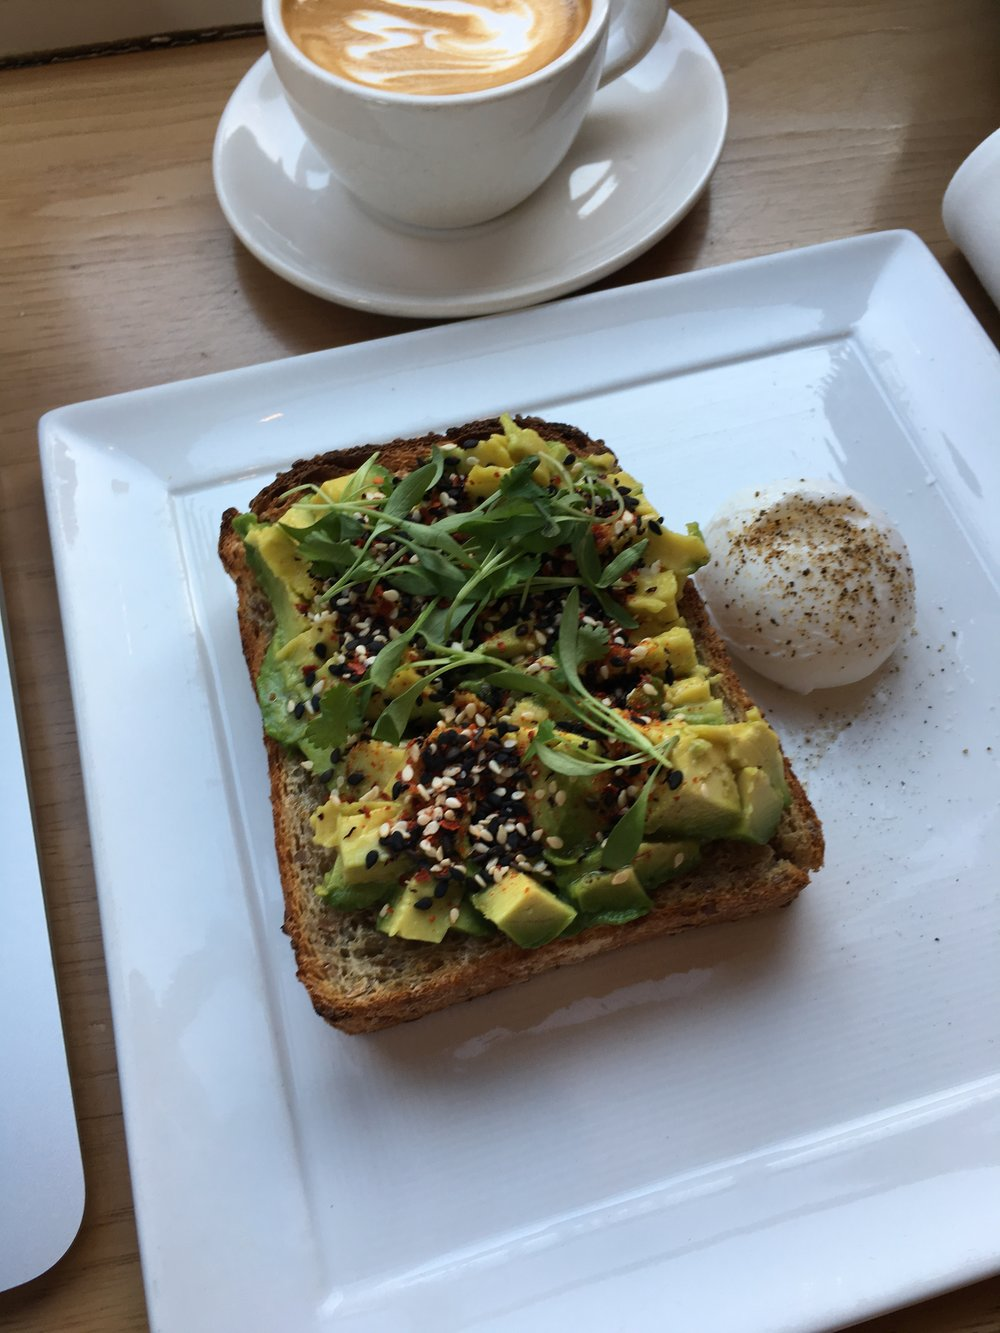 Avocado Toast, because it's California